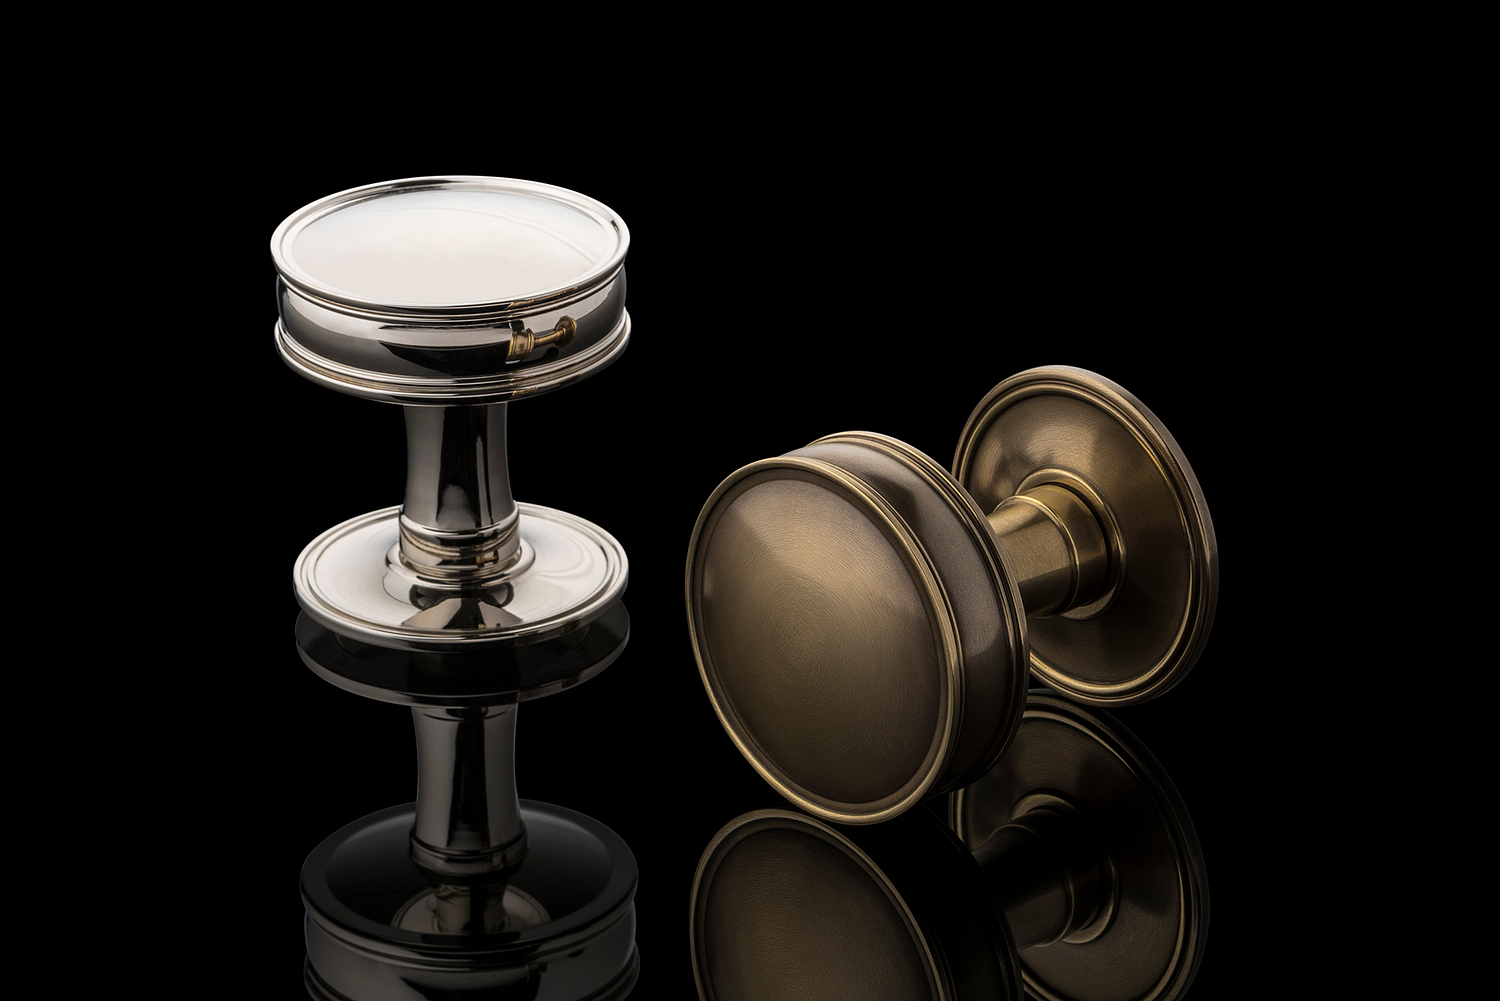 Door knobs in antique brass and polished nickel, Joseph Giles, London